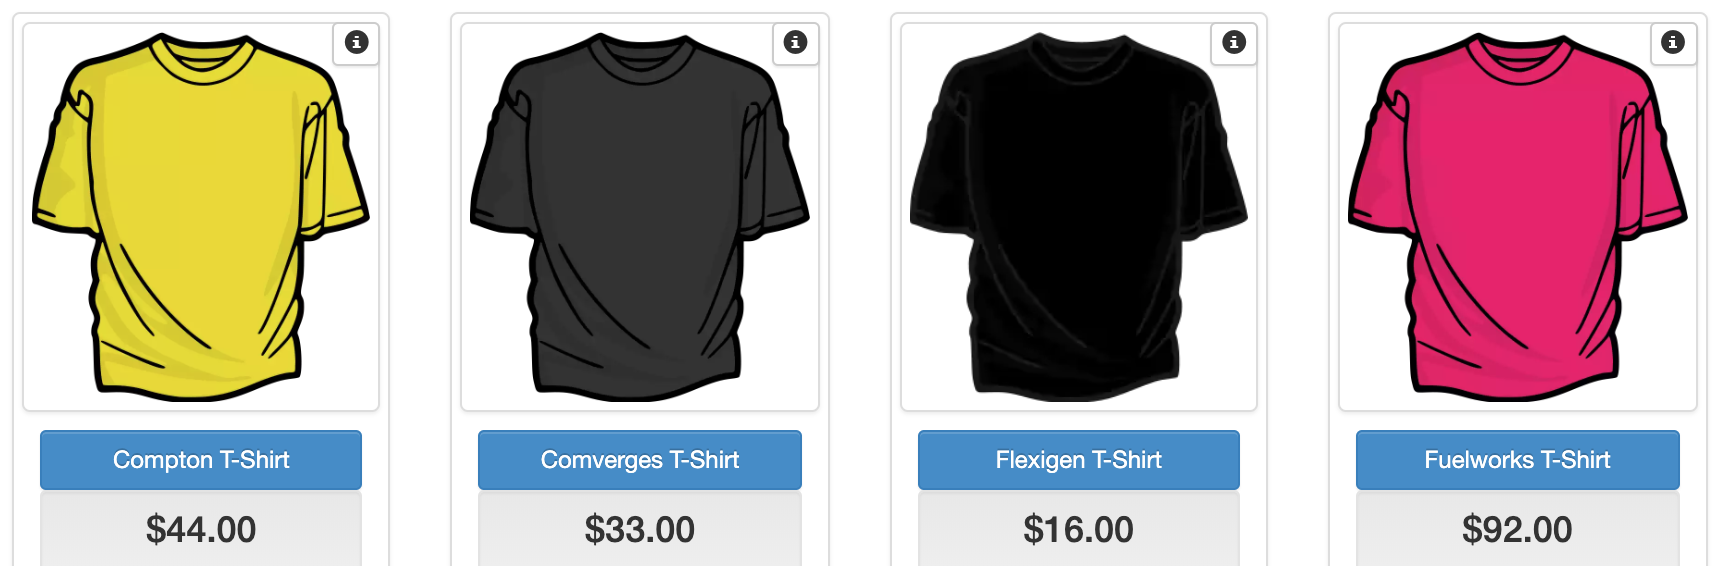 Screenshot of t-shirt on a fictional e-commerce website